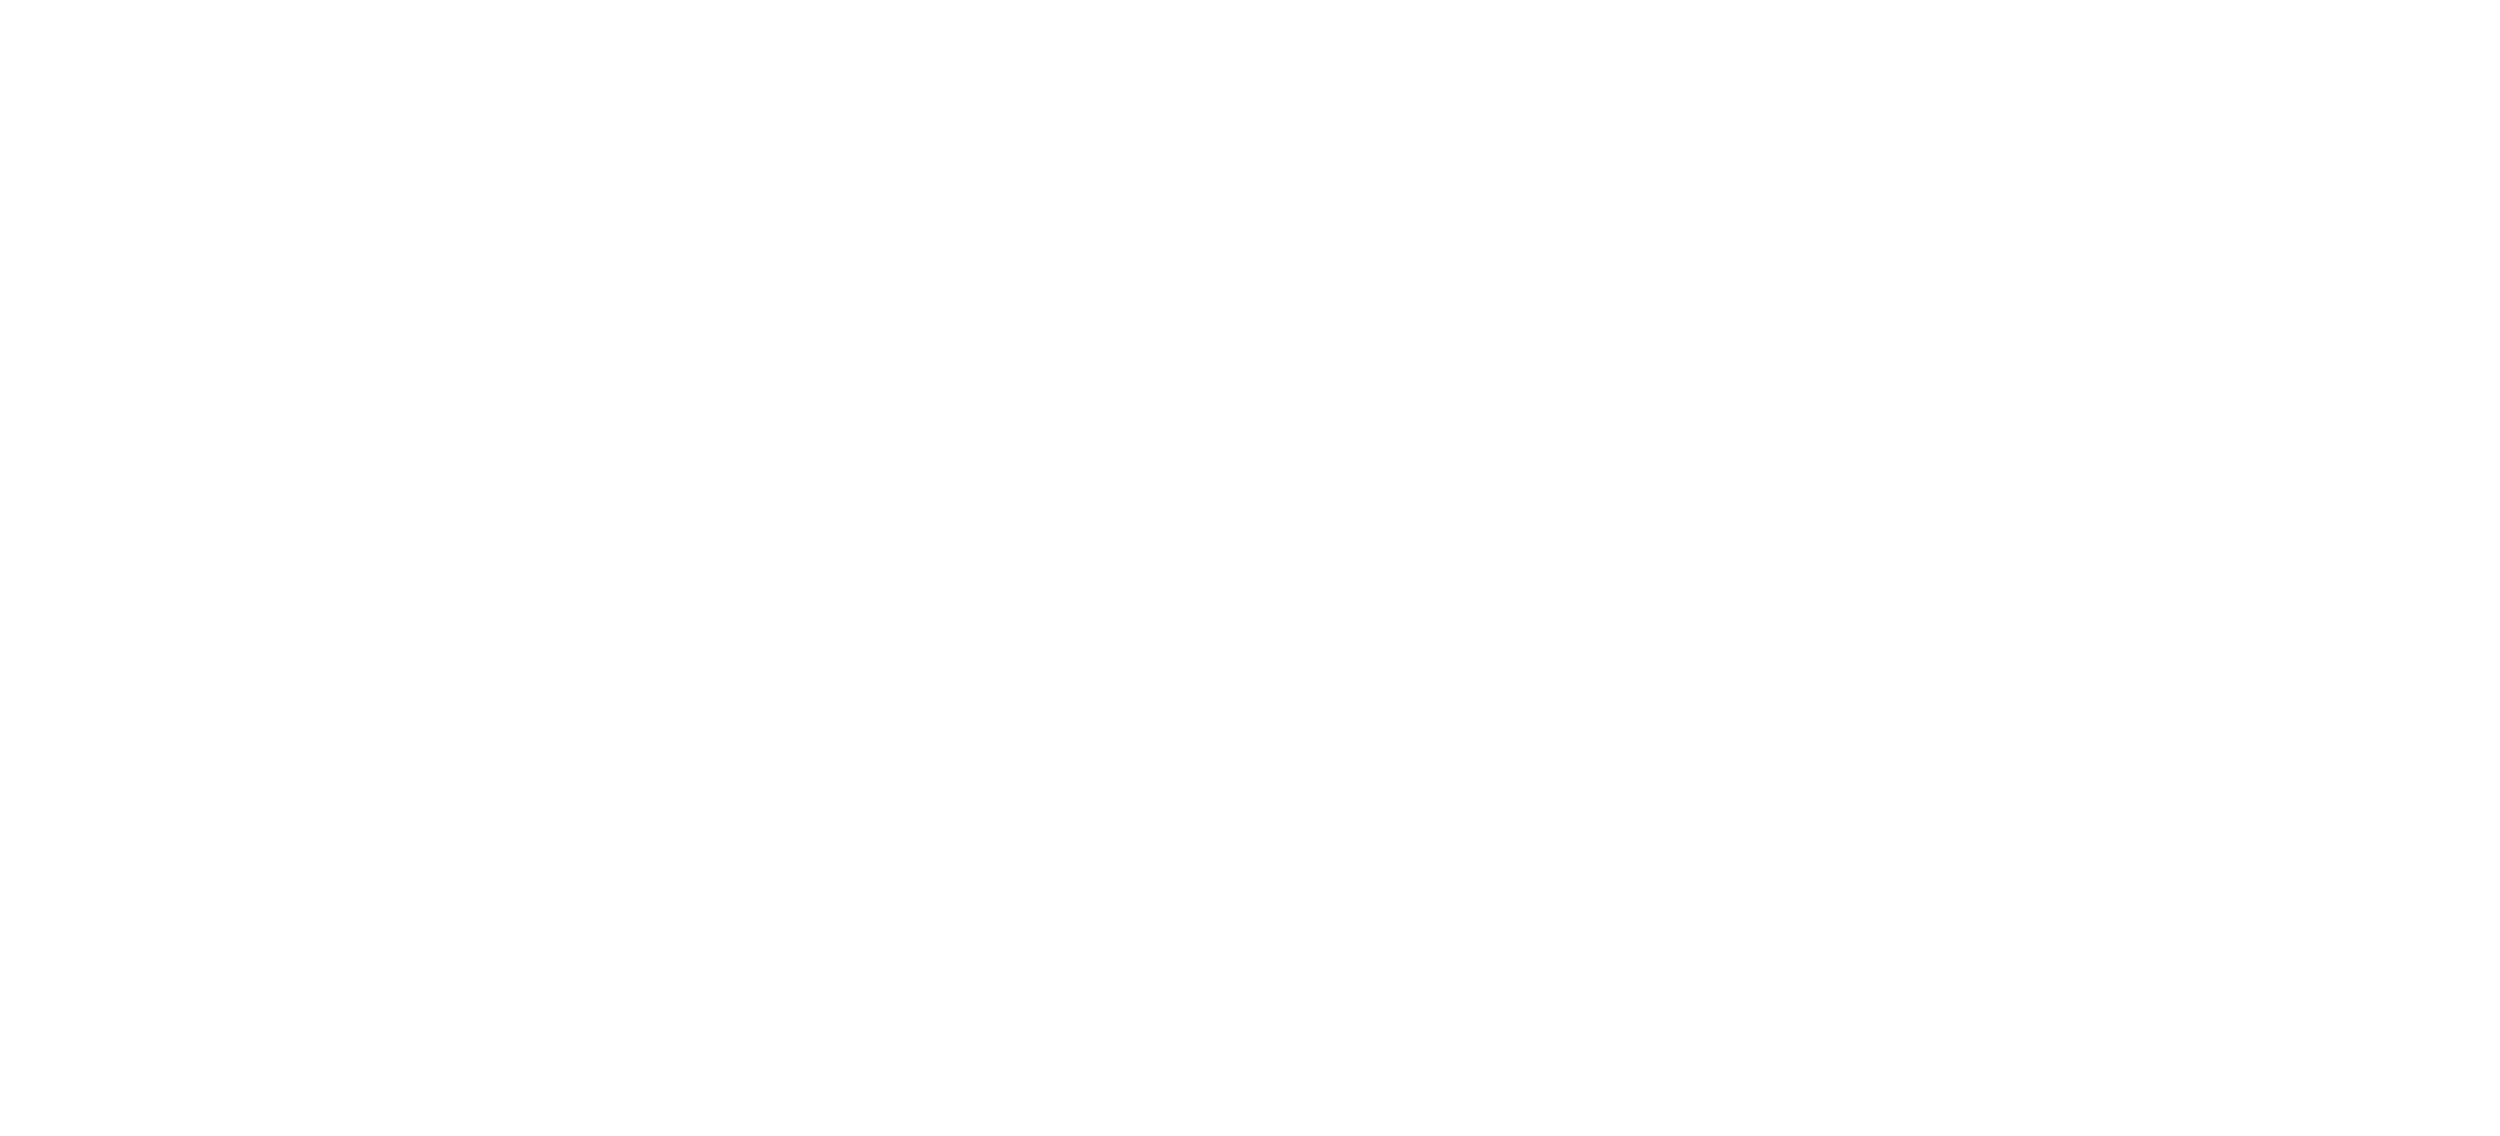 design_workshop_architects_logo